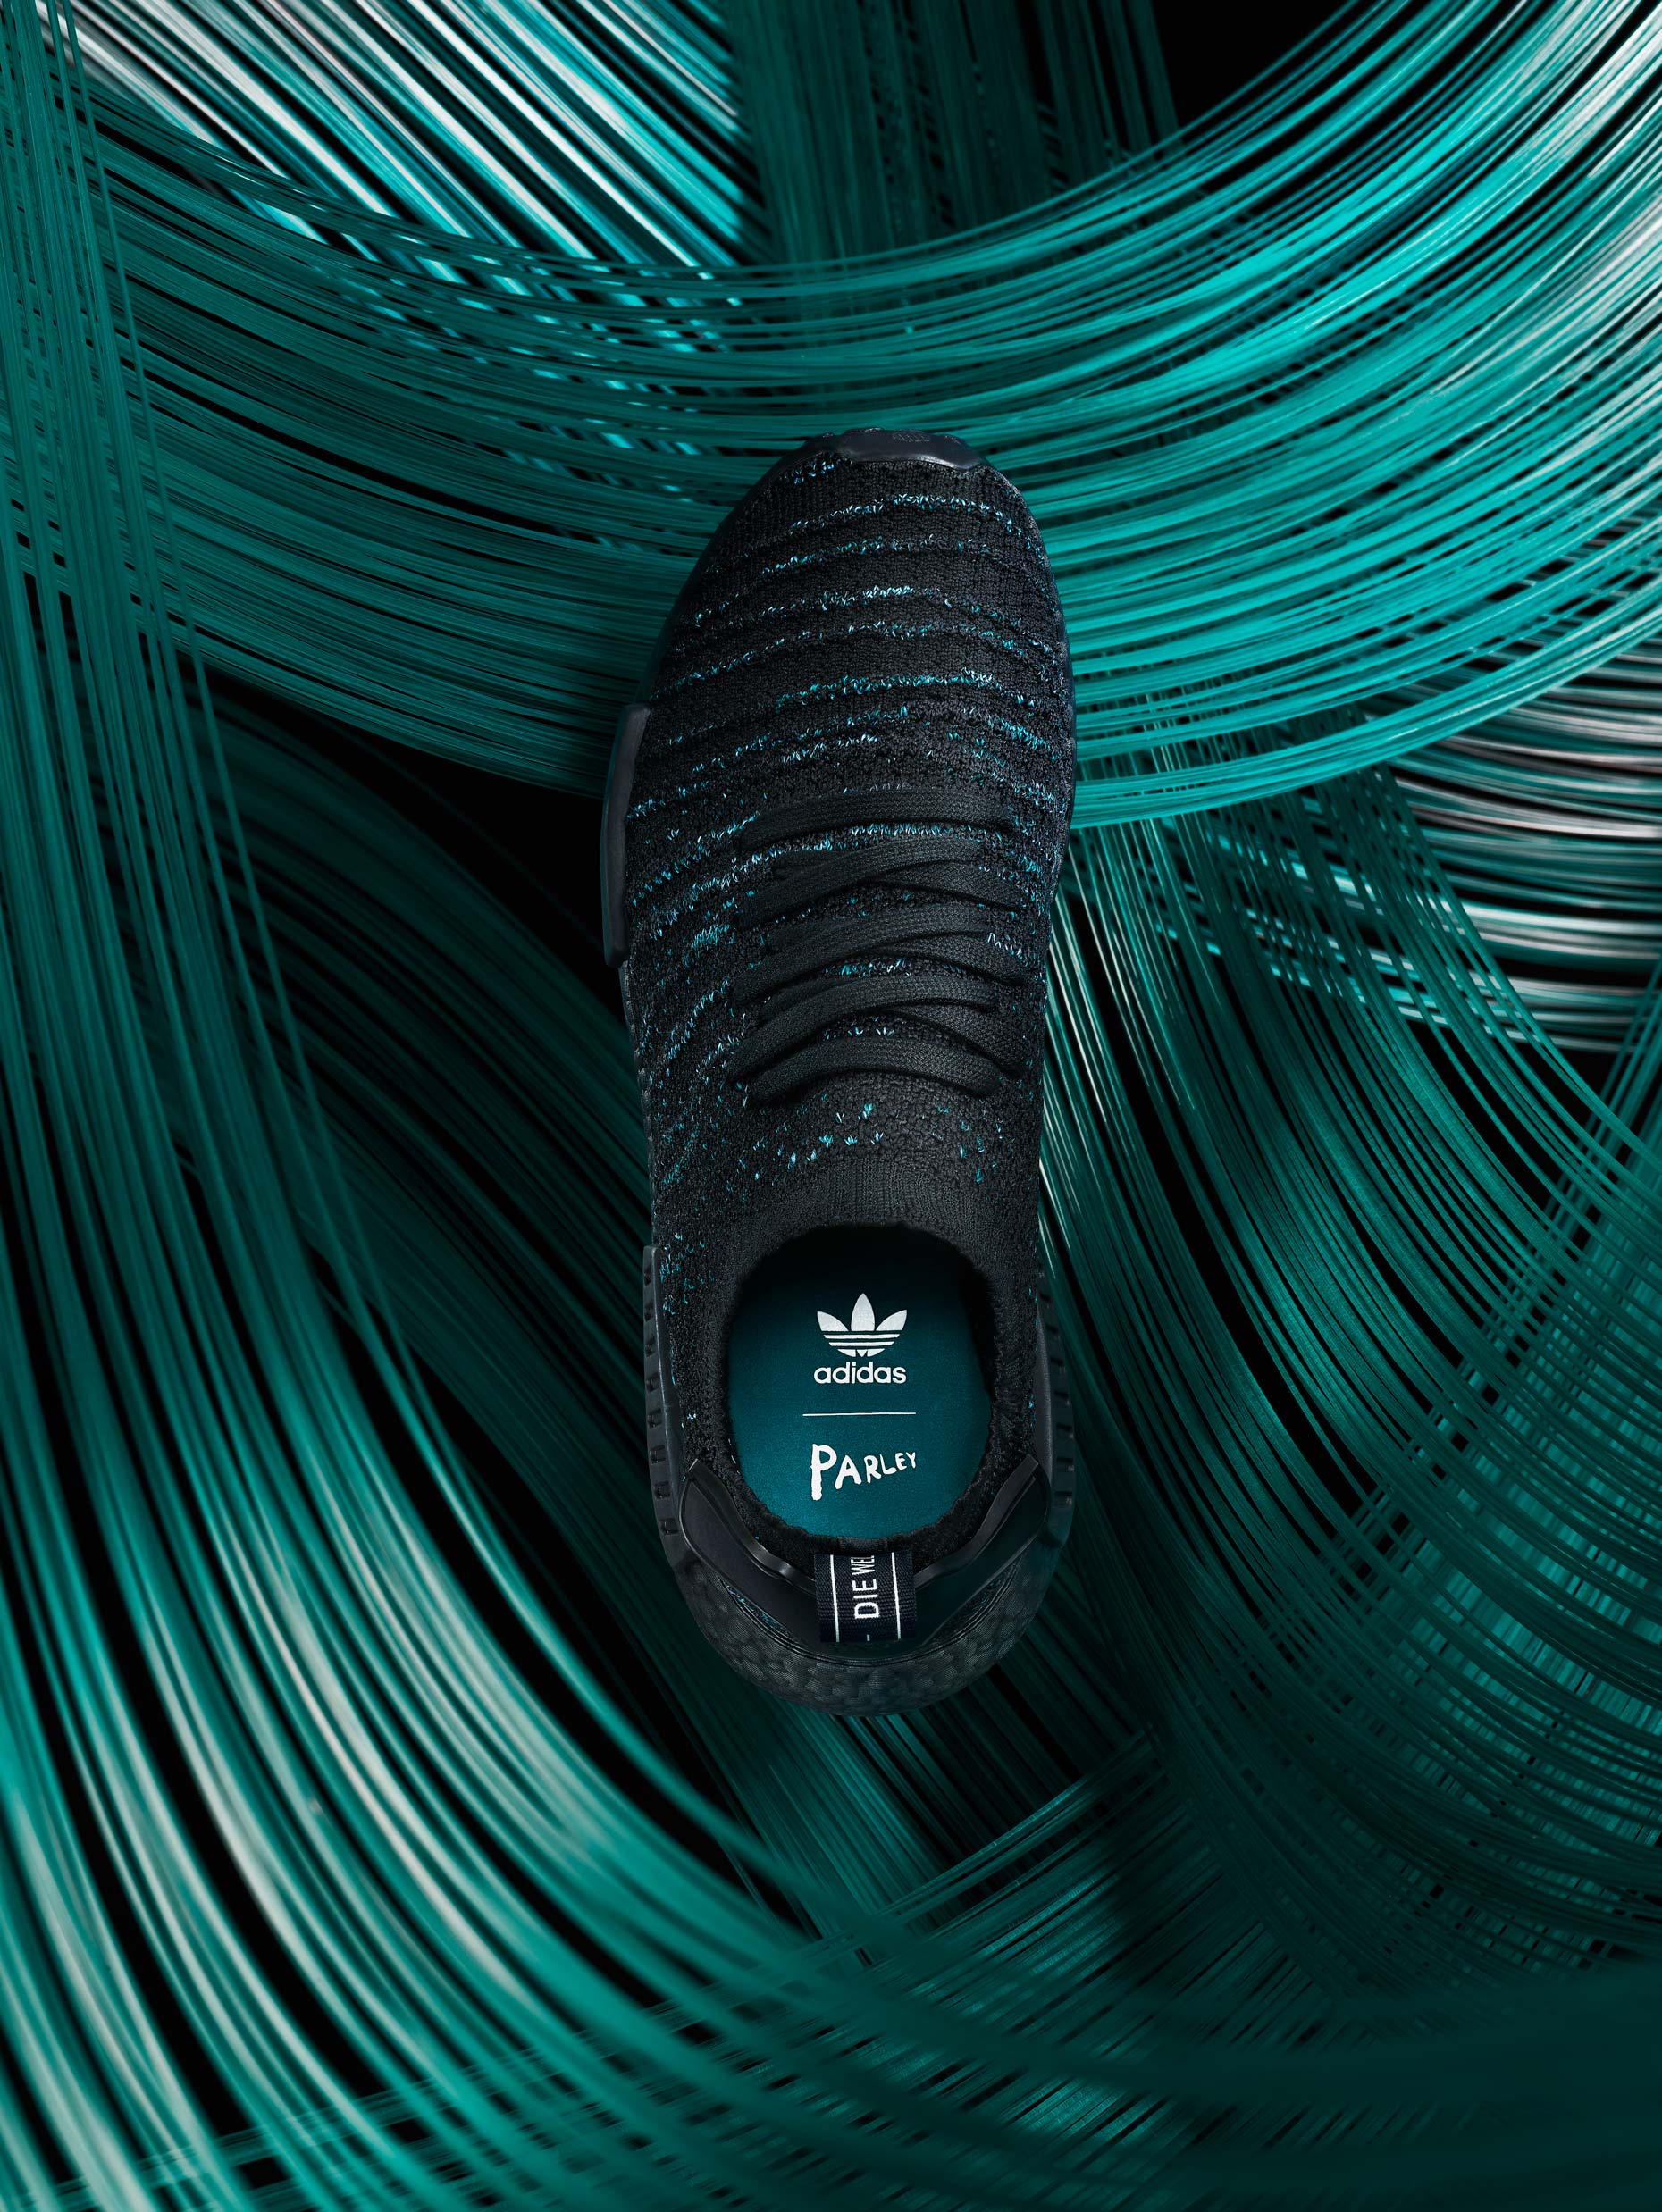 Adidas Parley shoe standing straight up in front of hundreds of strings of green thread, photographed by product and still life photographer Adrian Mueller New York